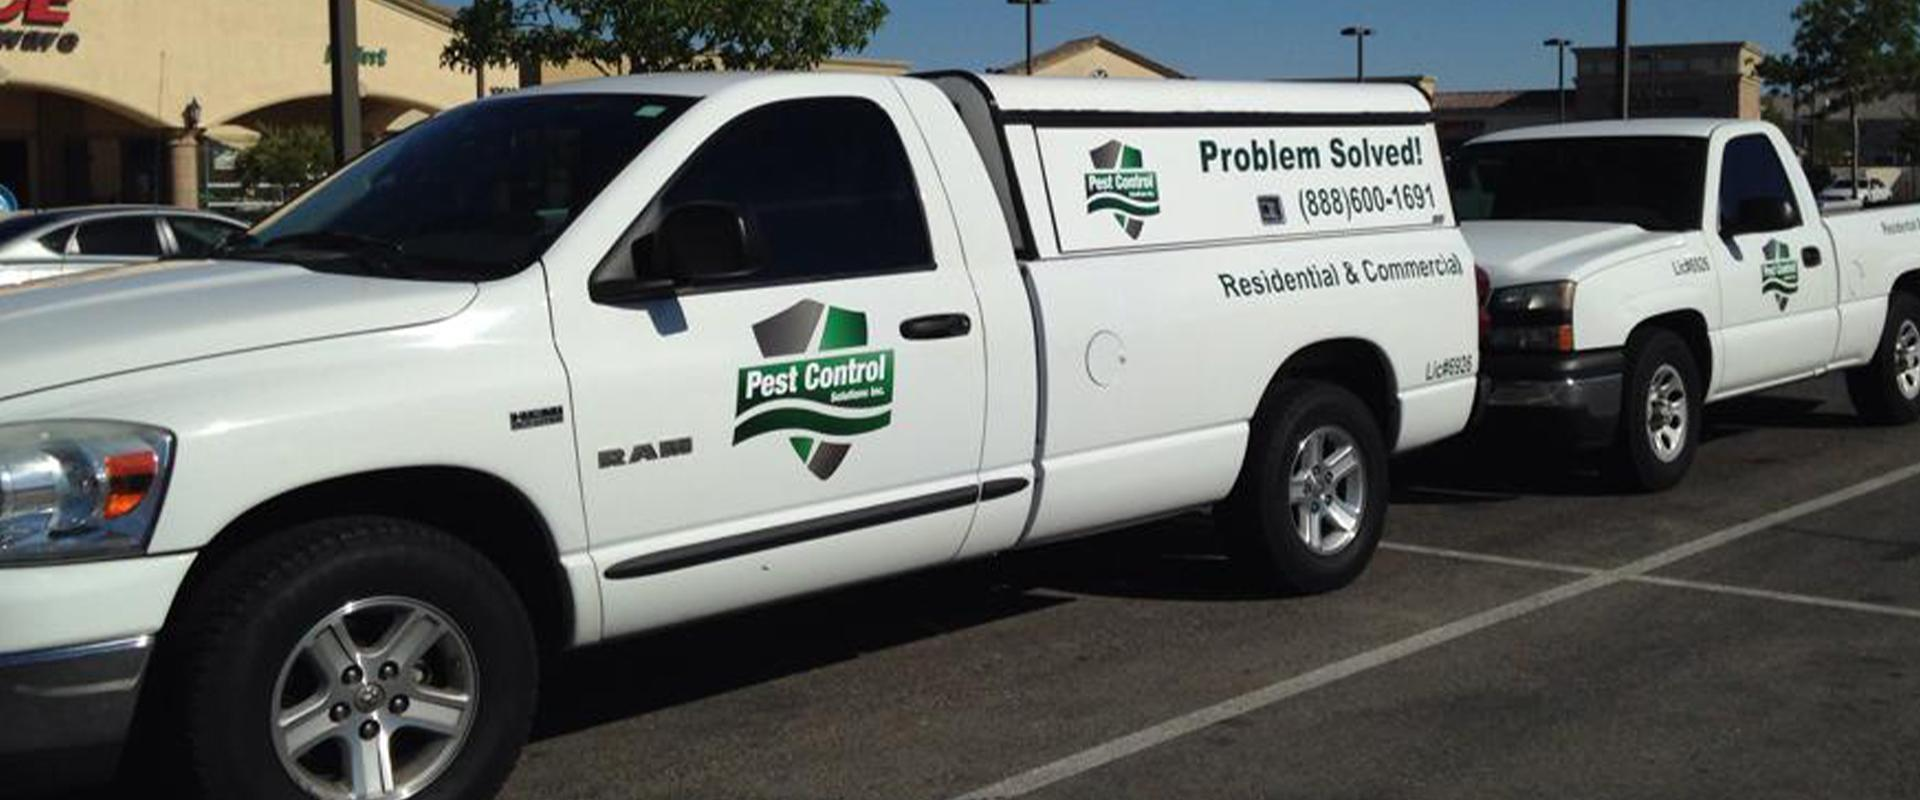 pest control solutions trucks